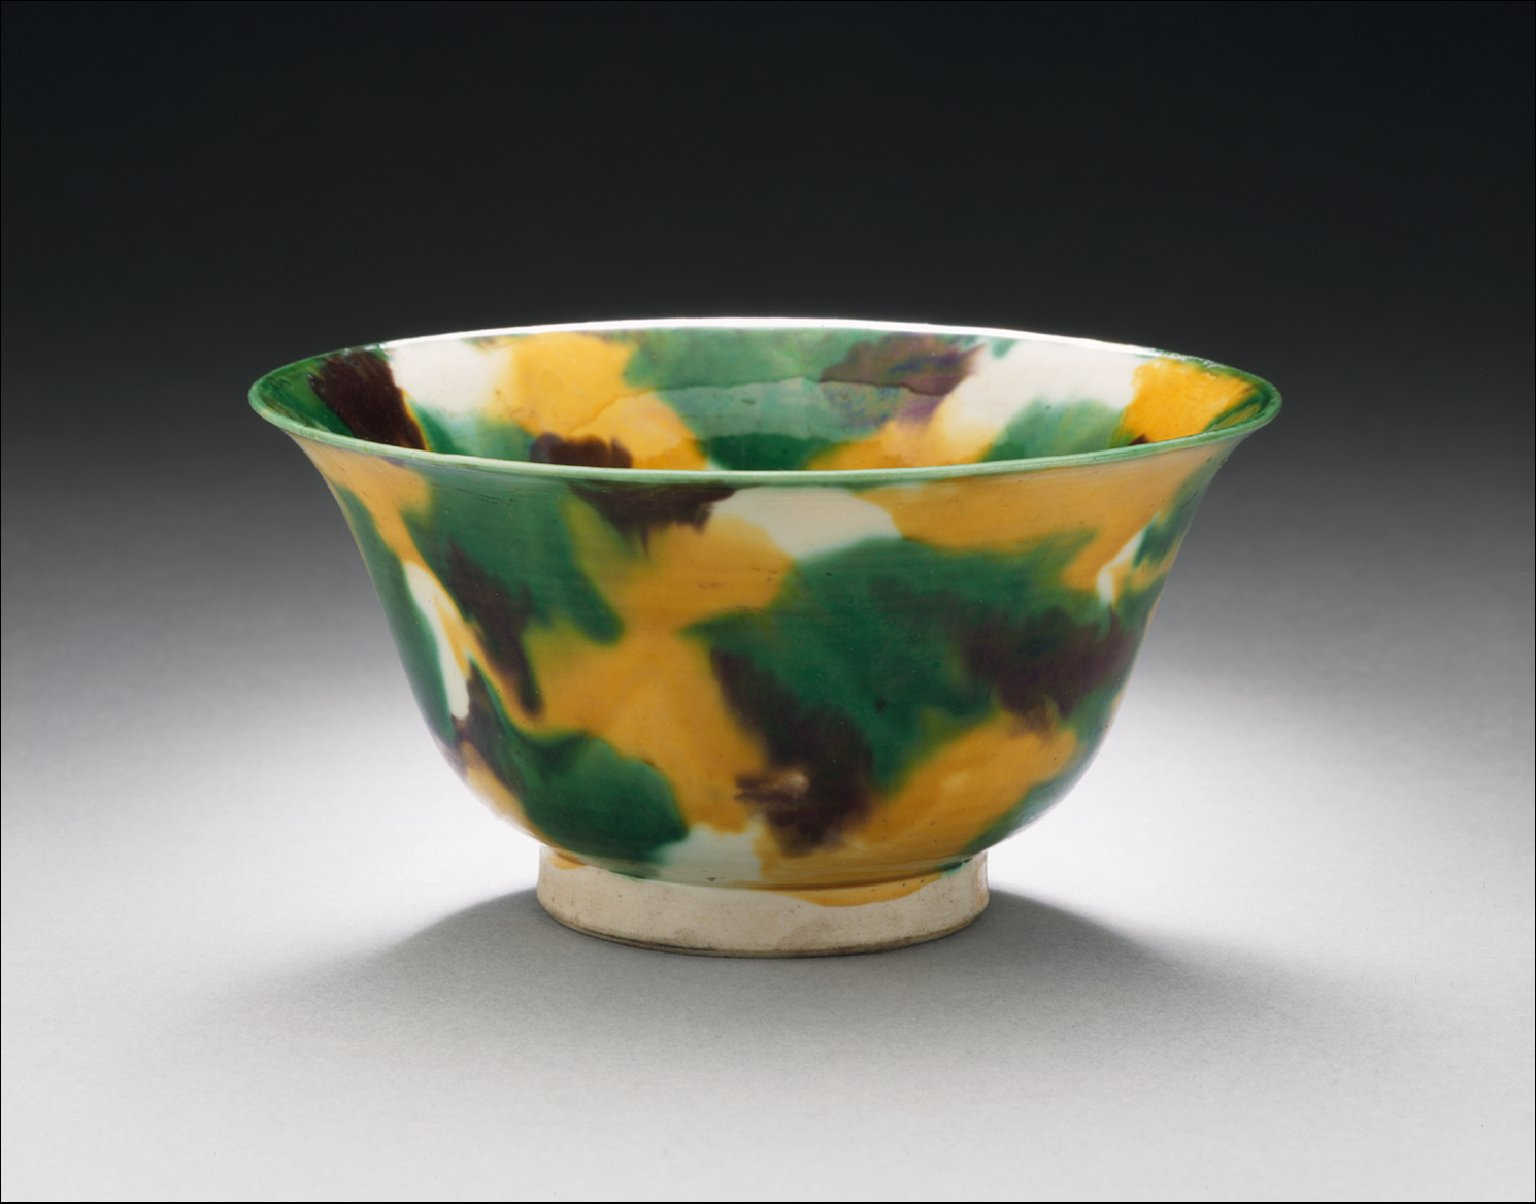 Bowl (Wan) with Polychrome Splashes